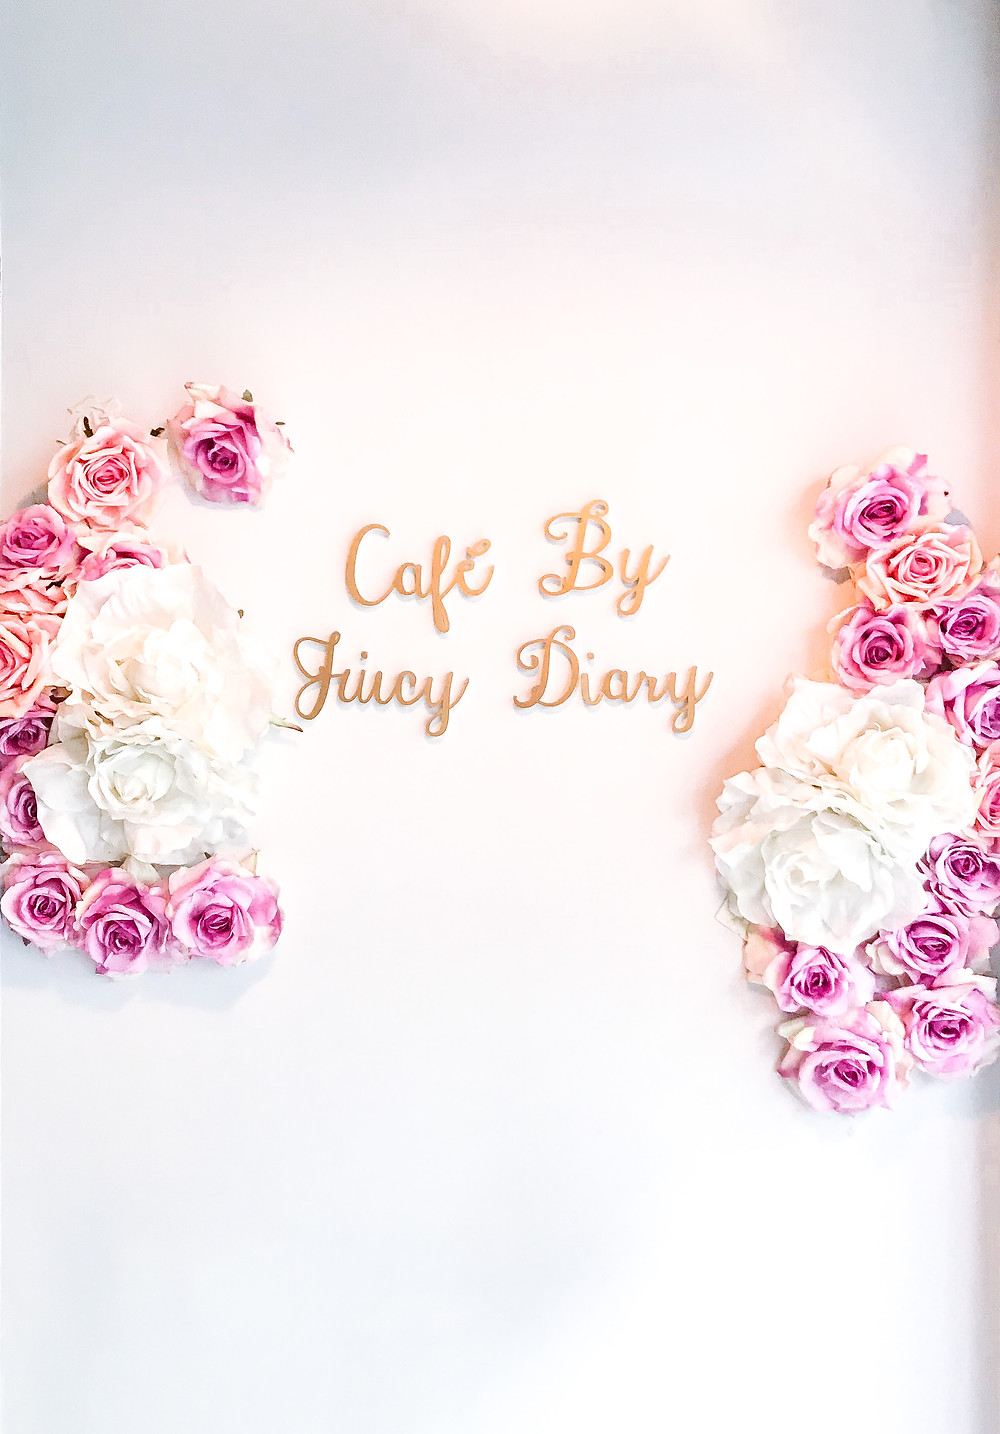 Cafe By Juicy Diary